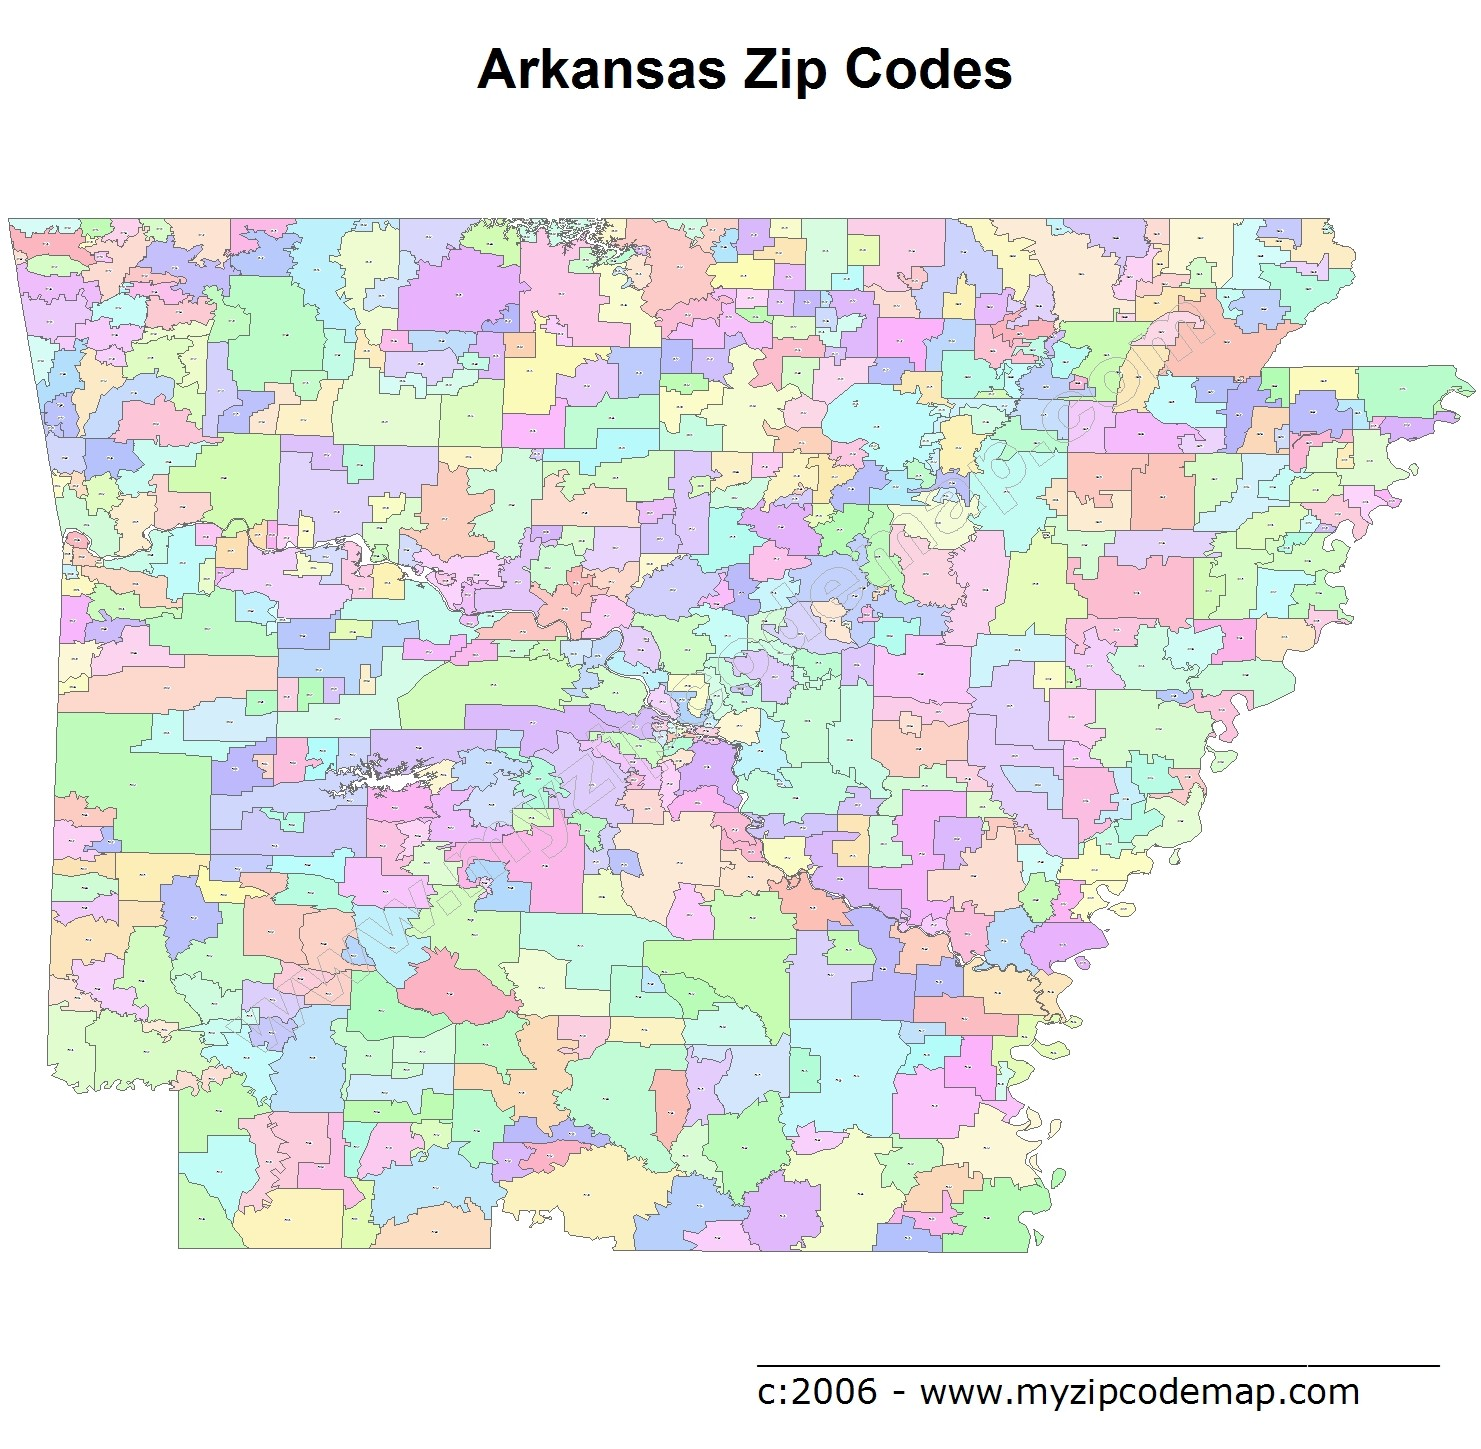 Arkansas (AR) Zip Code Map